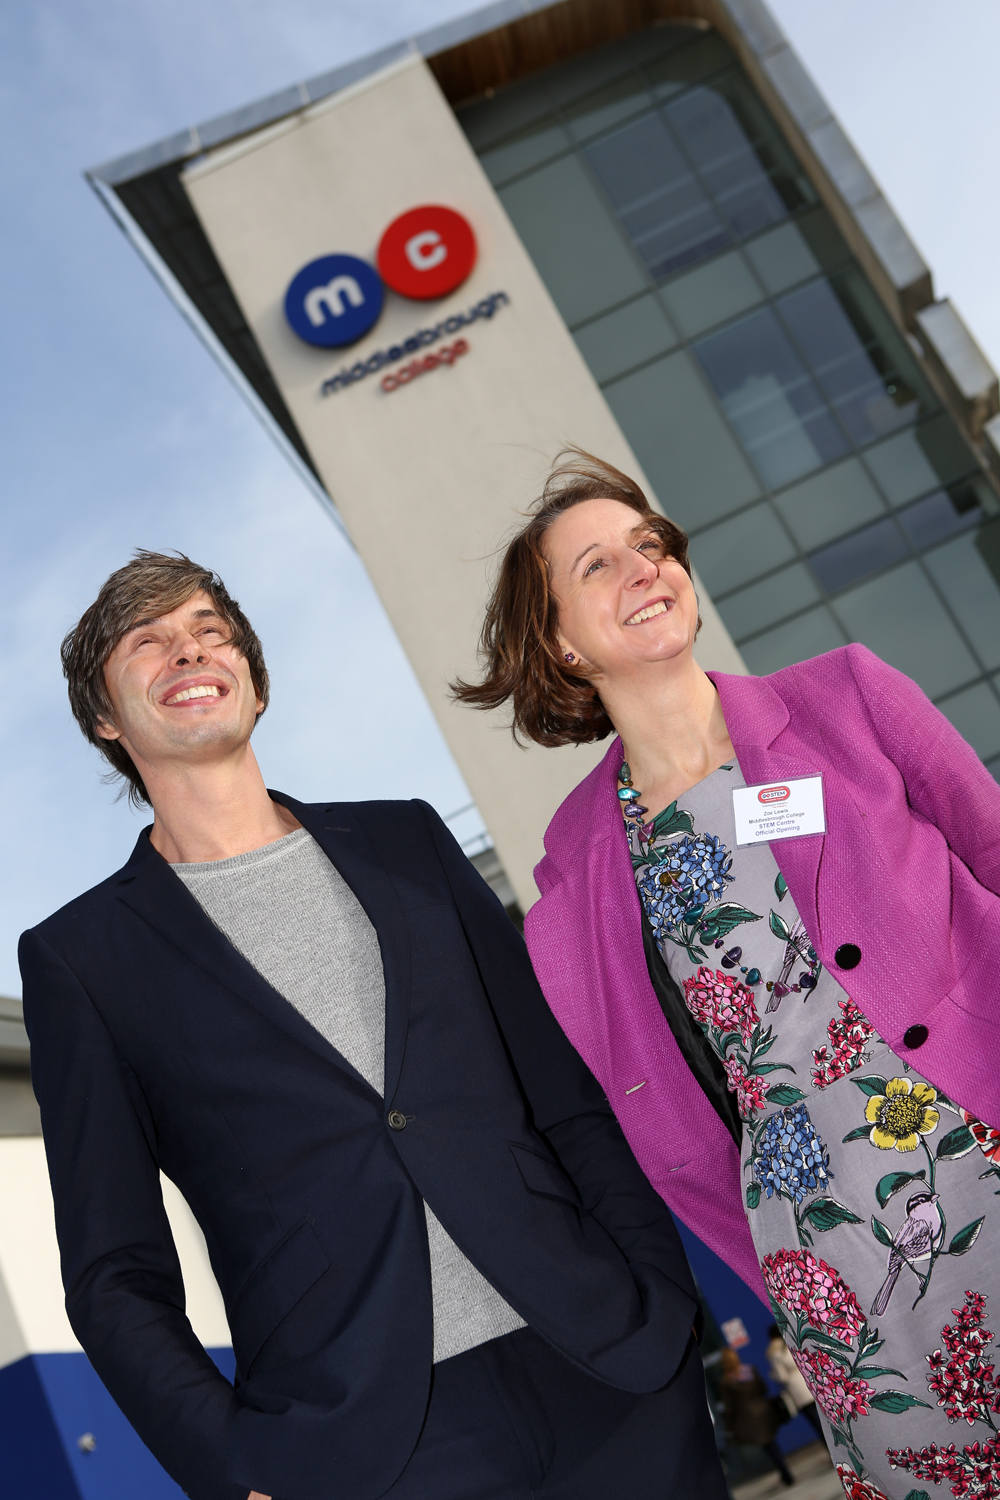 Professor Brian Cox with Middlesbrough College principal Zoe Lewis